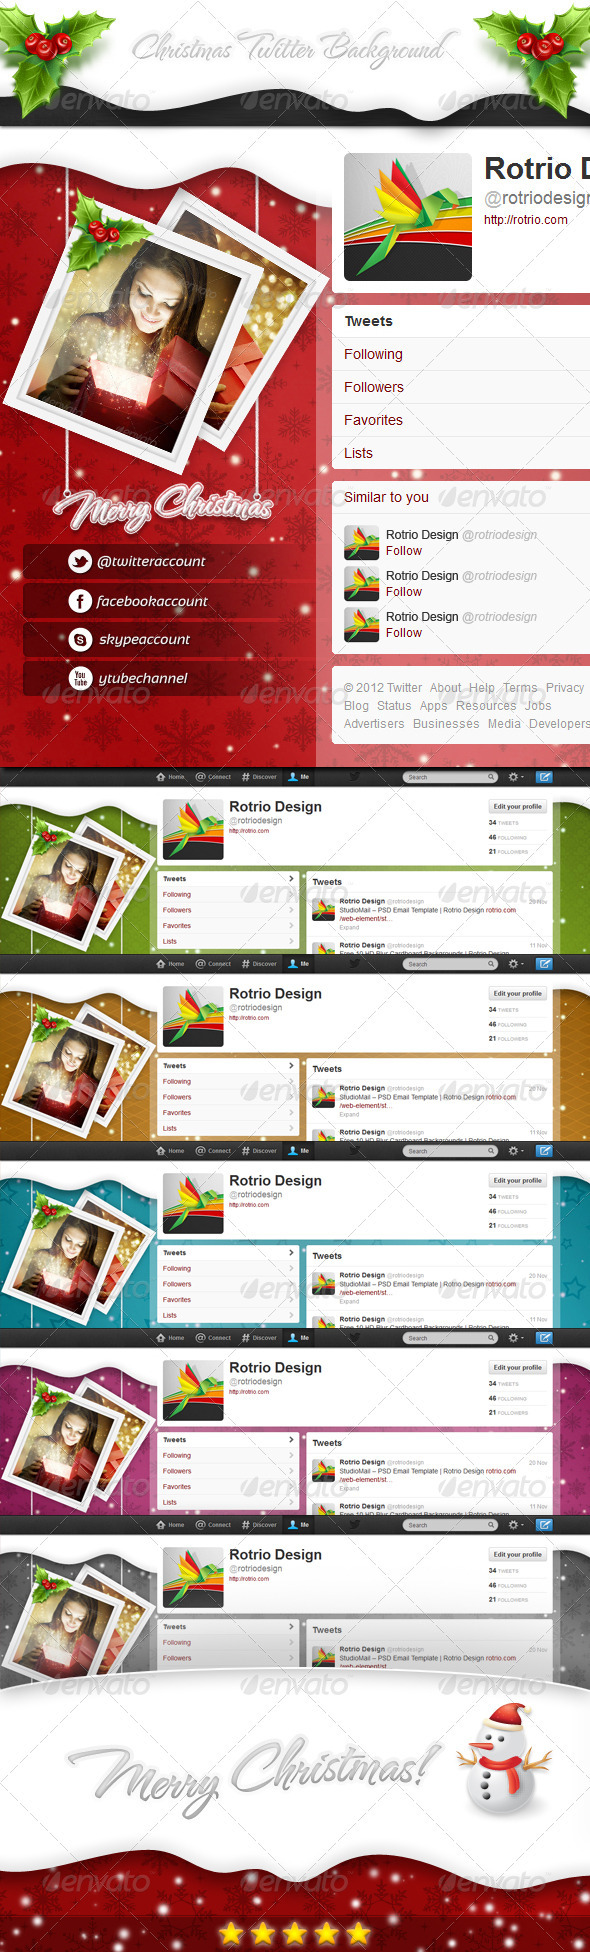 Christmas Twitter Background - Twitter Social Media